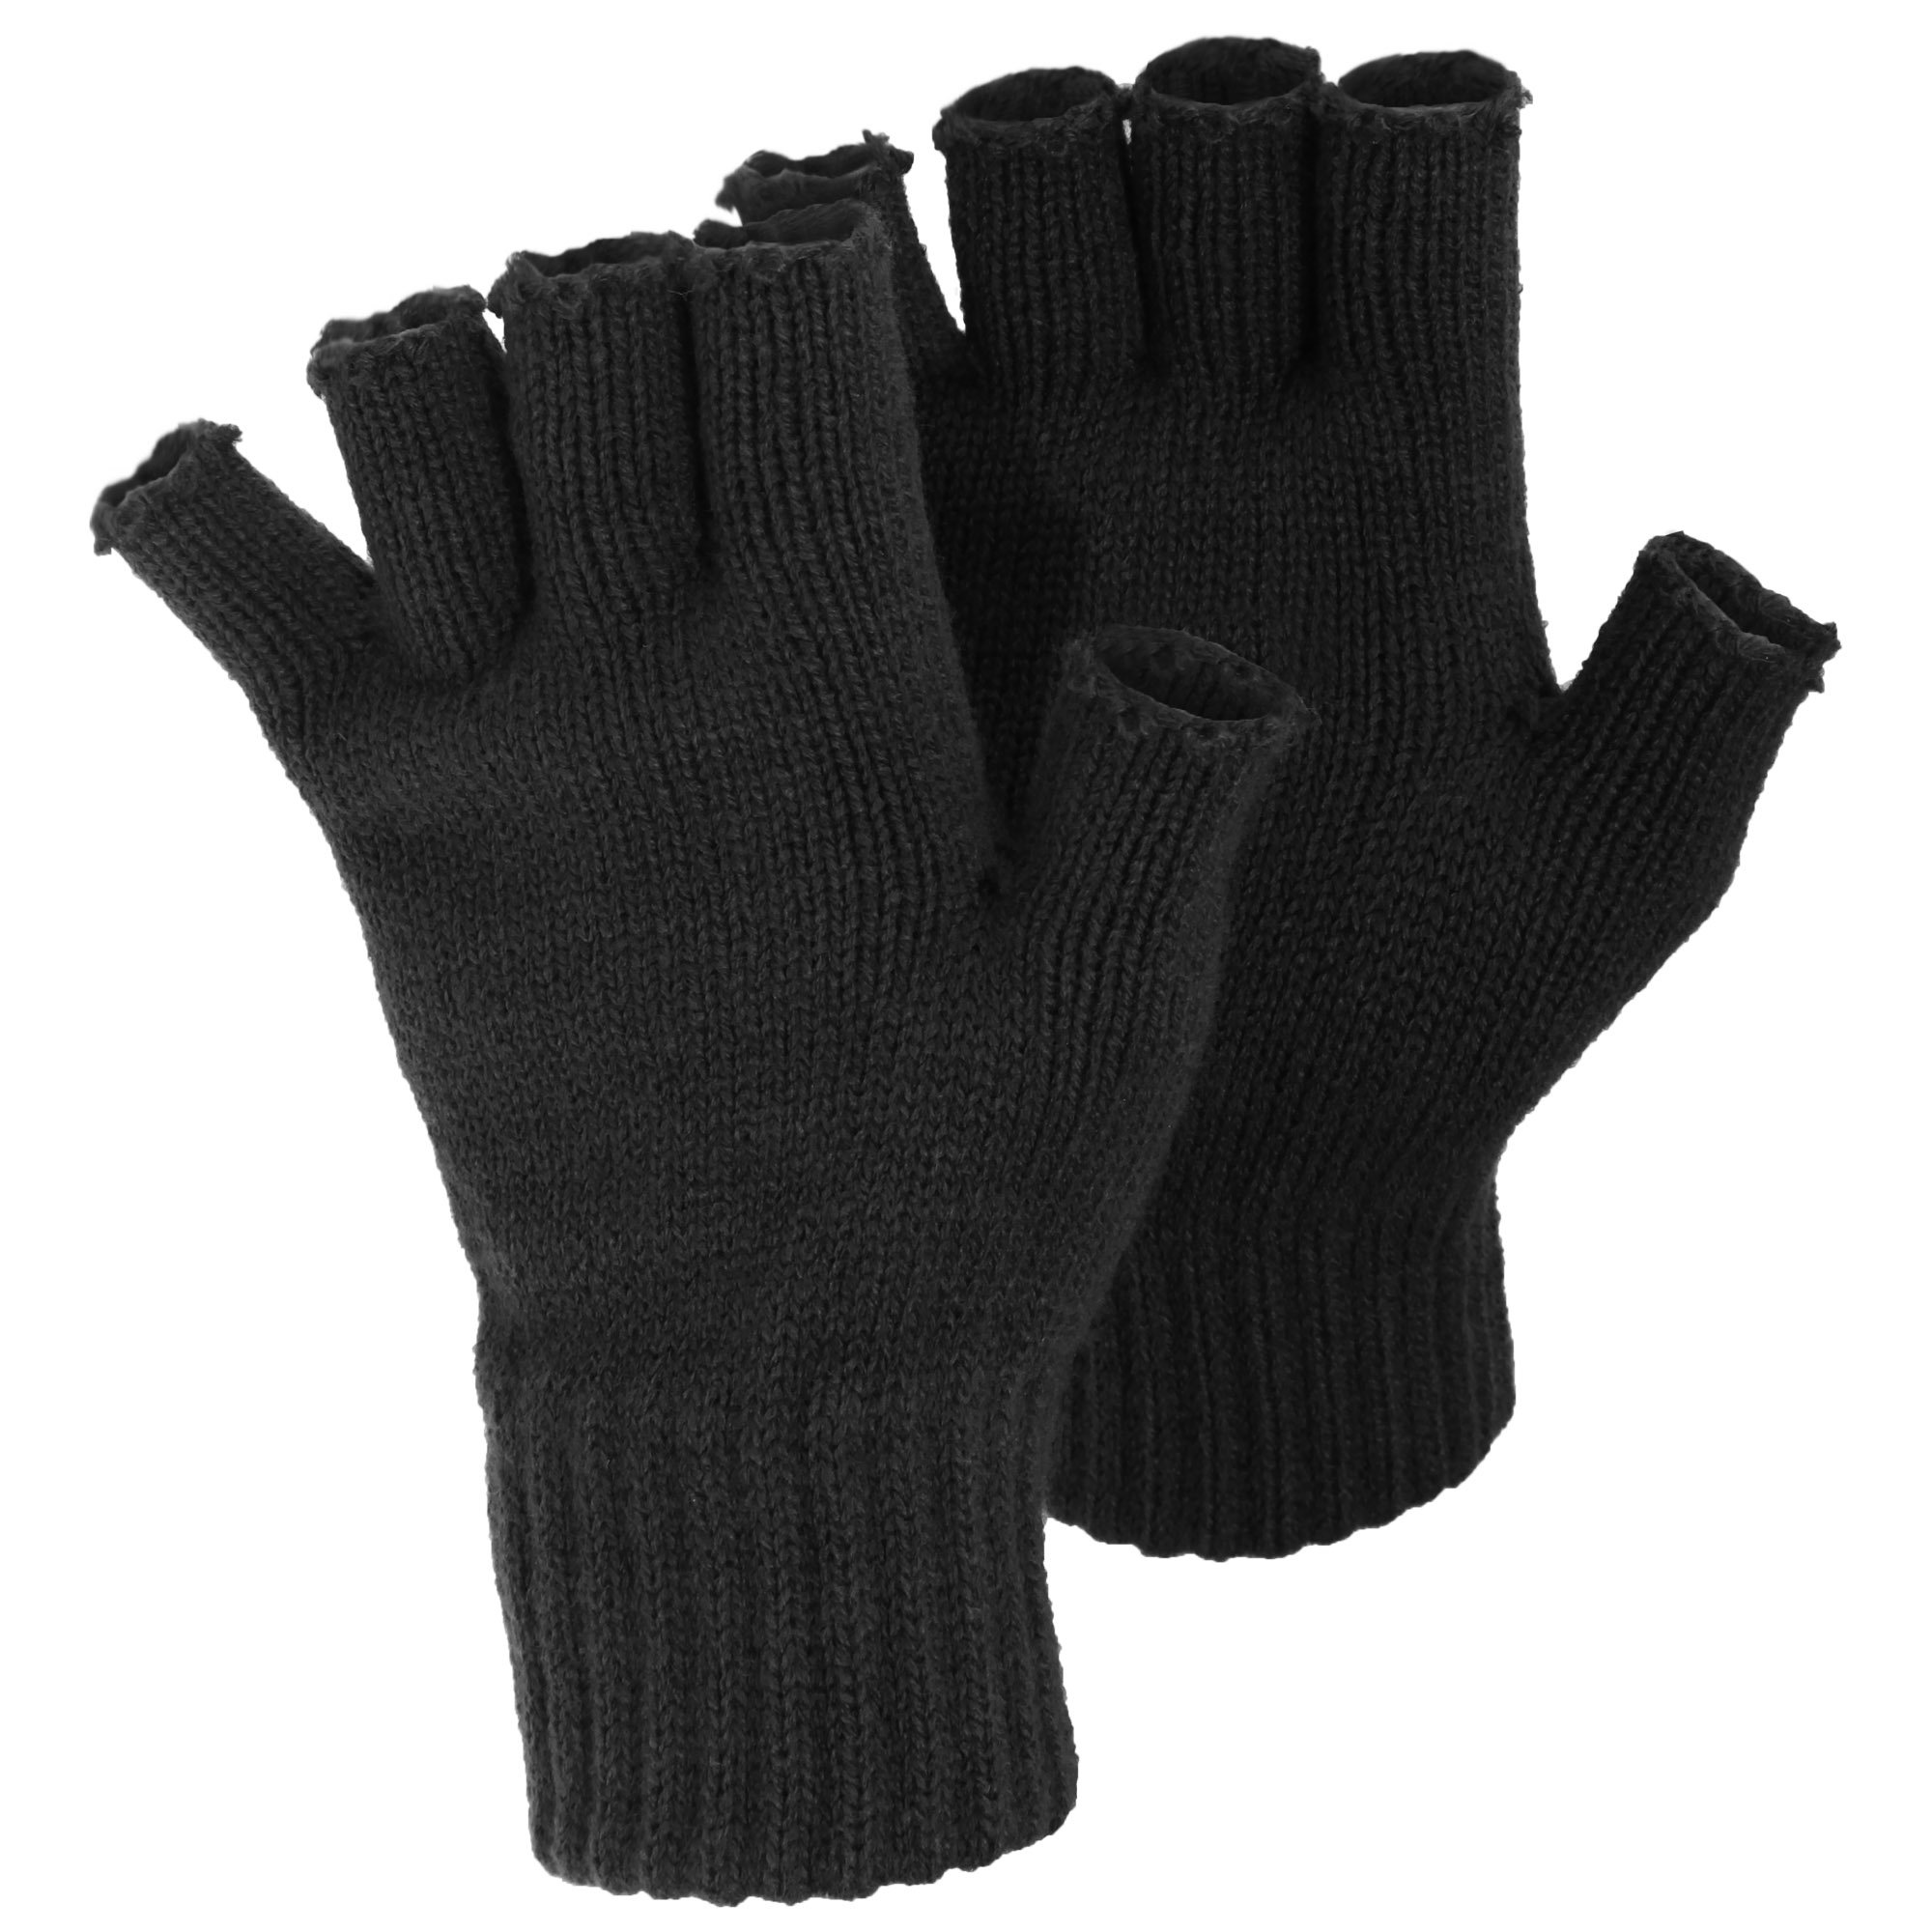 FLOSO Ladies/Womens Winter Fingerless Gloves (One Size) (Black)